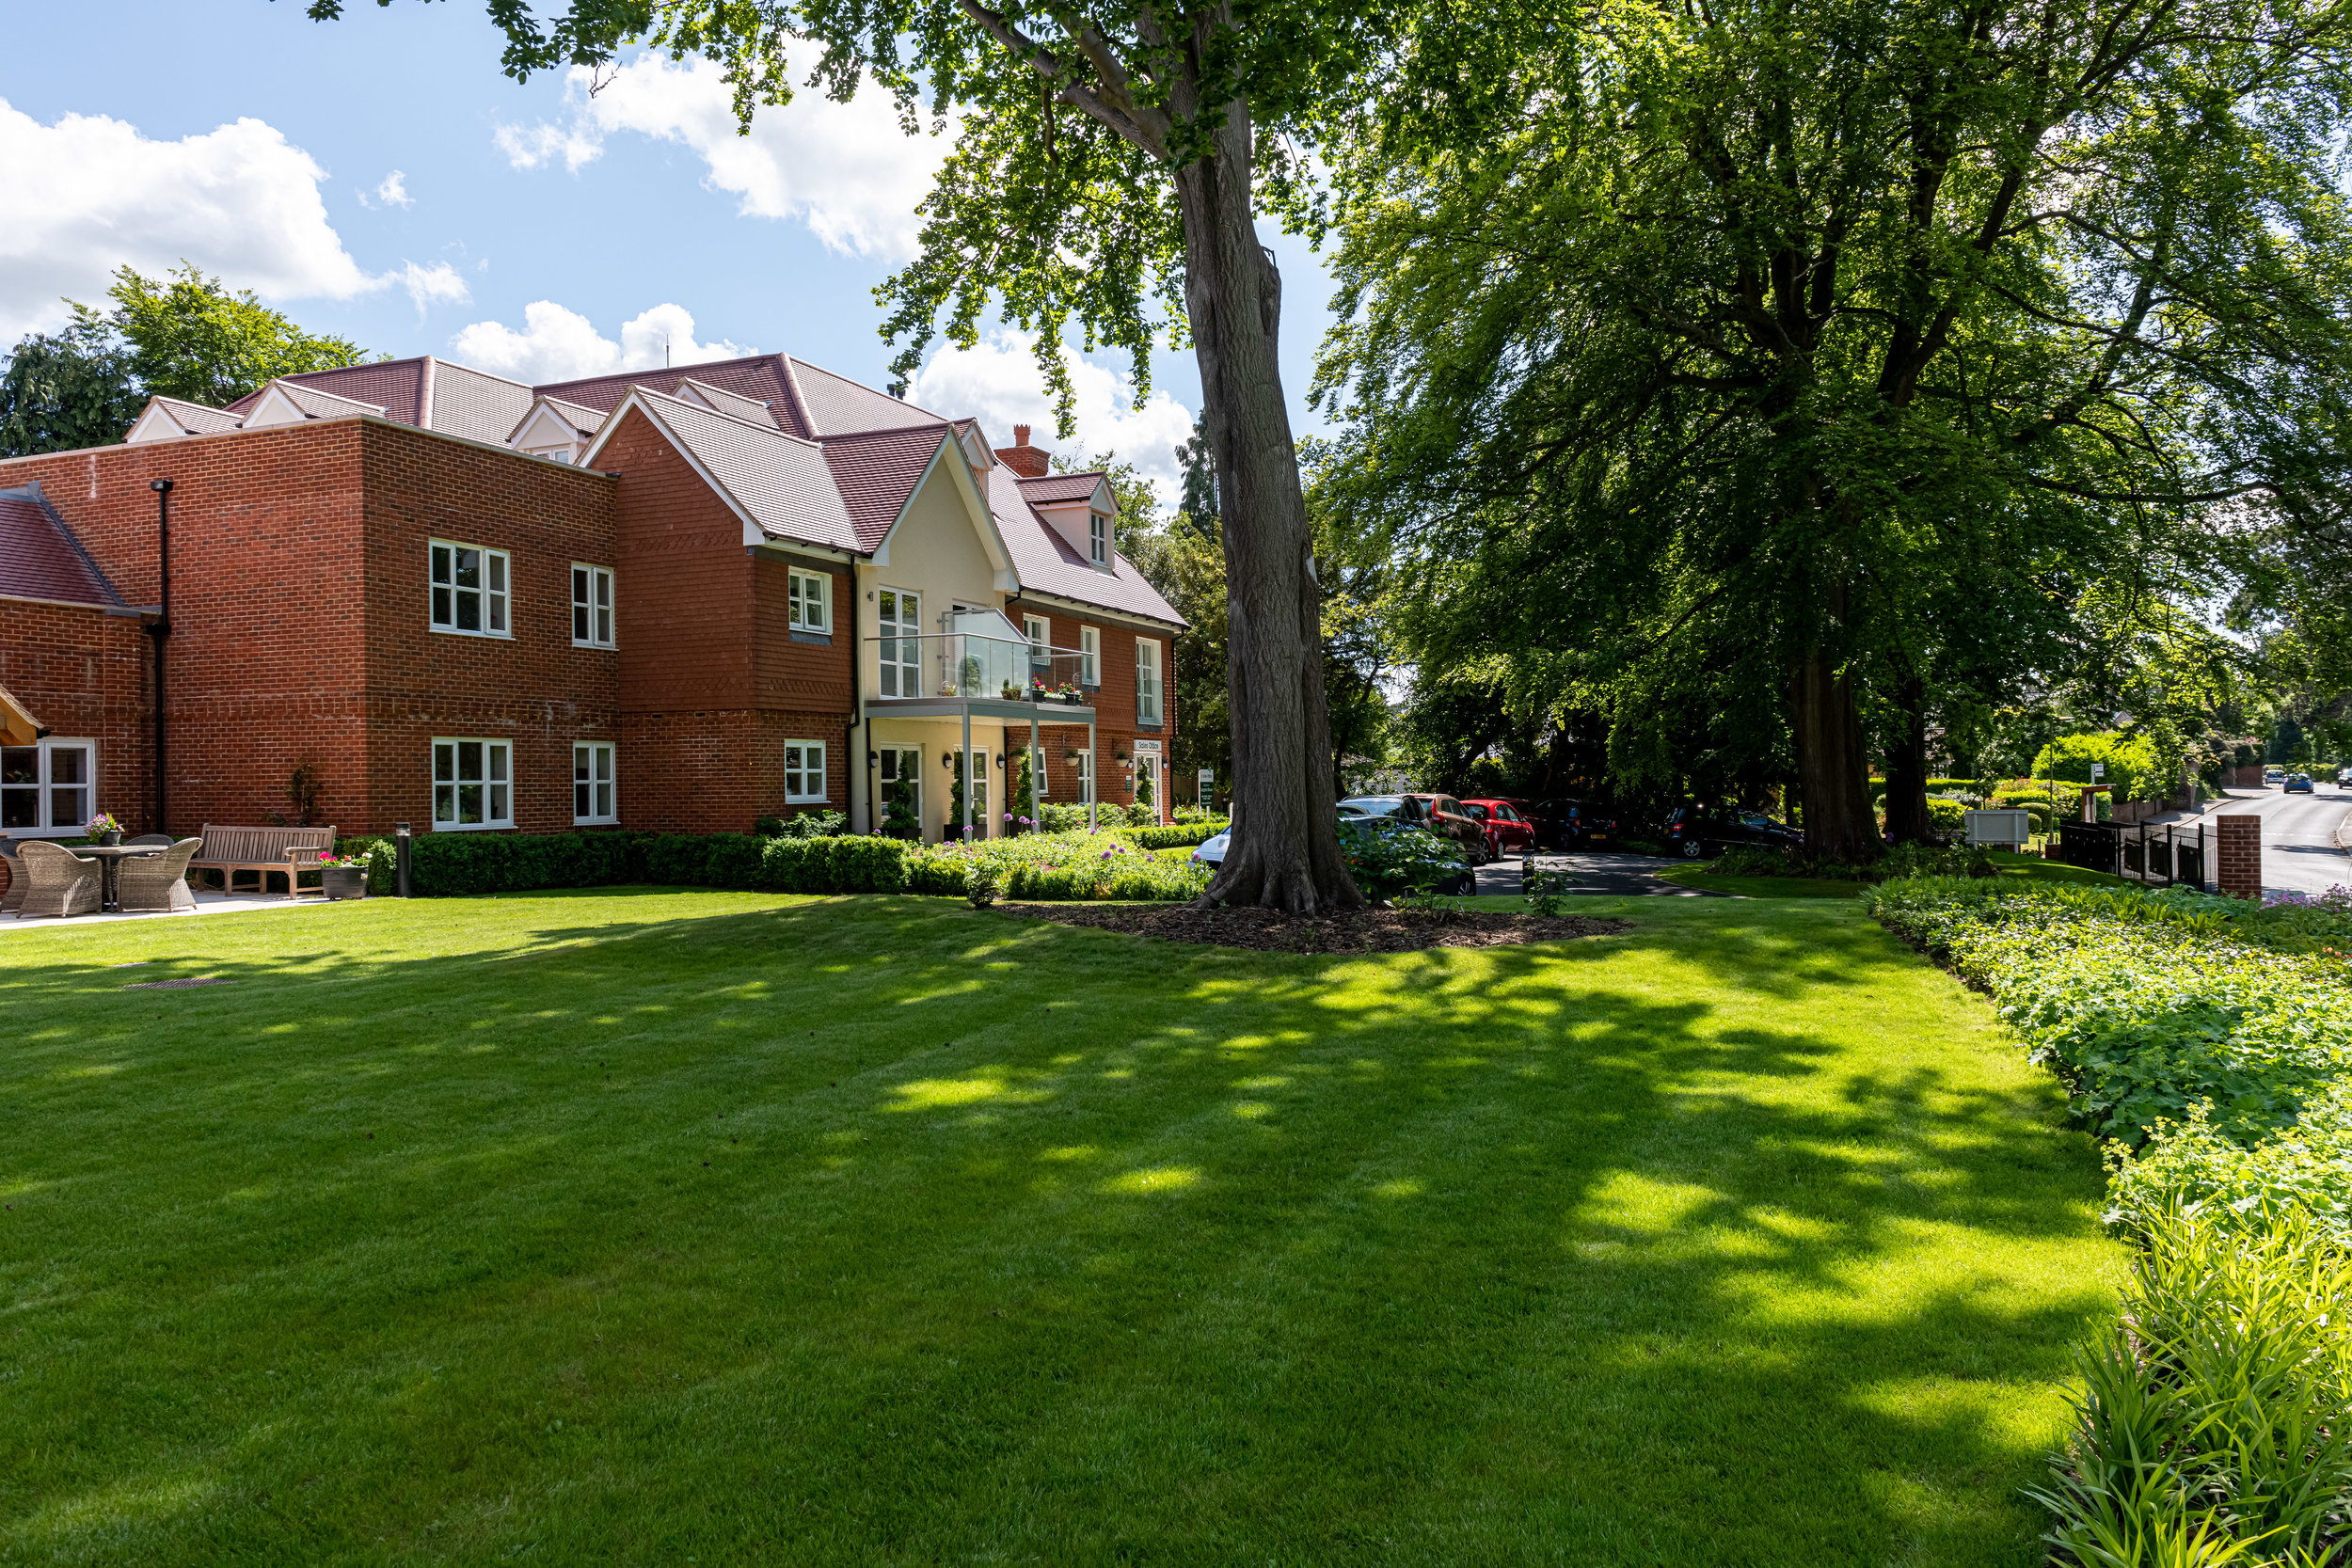 Langton House, Warlingham, Surrey. A McCarthy and Stone Retirement Living development for the Over 60s.